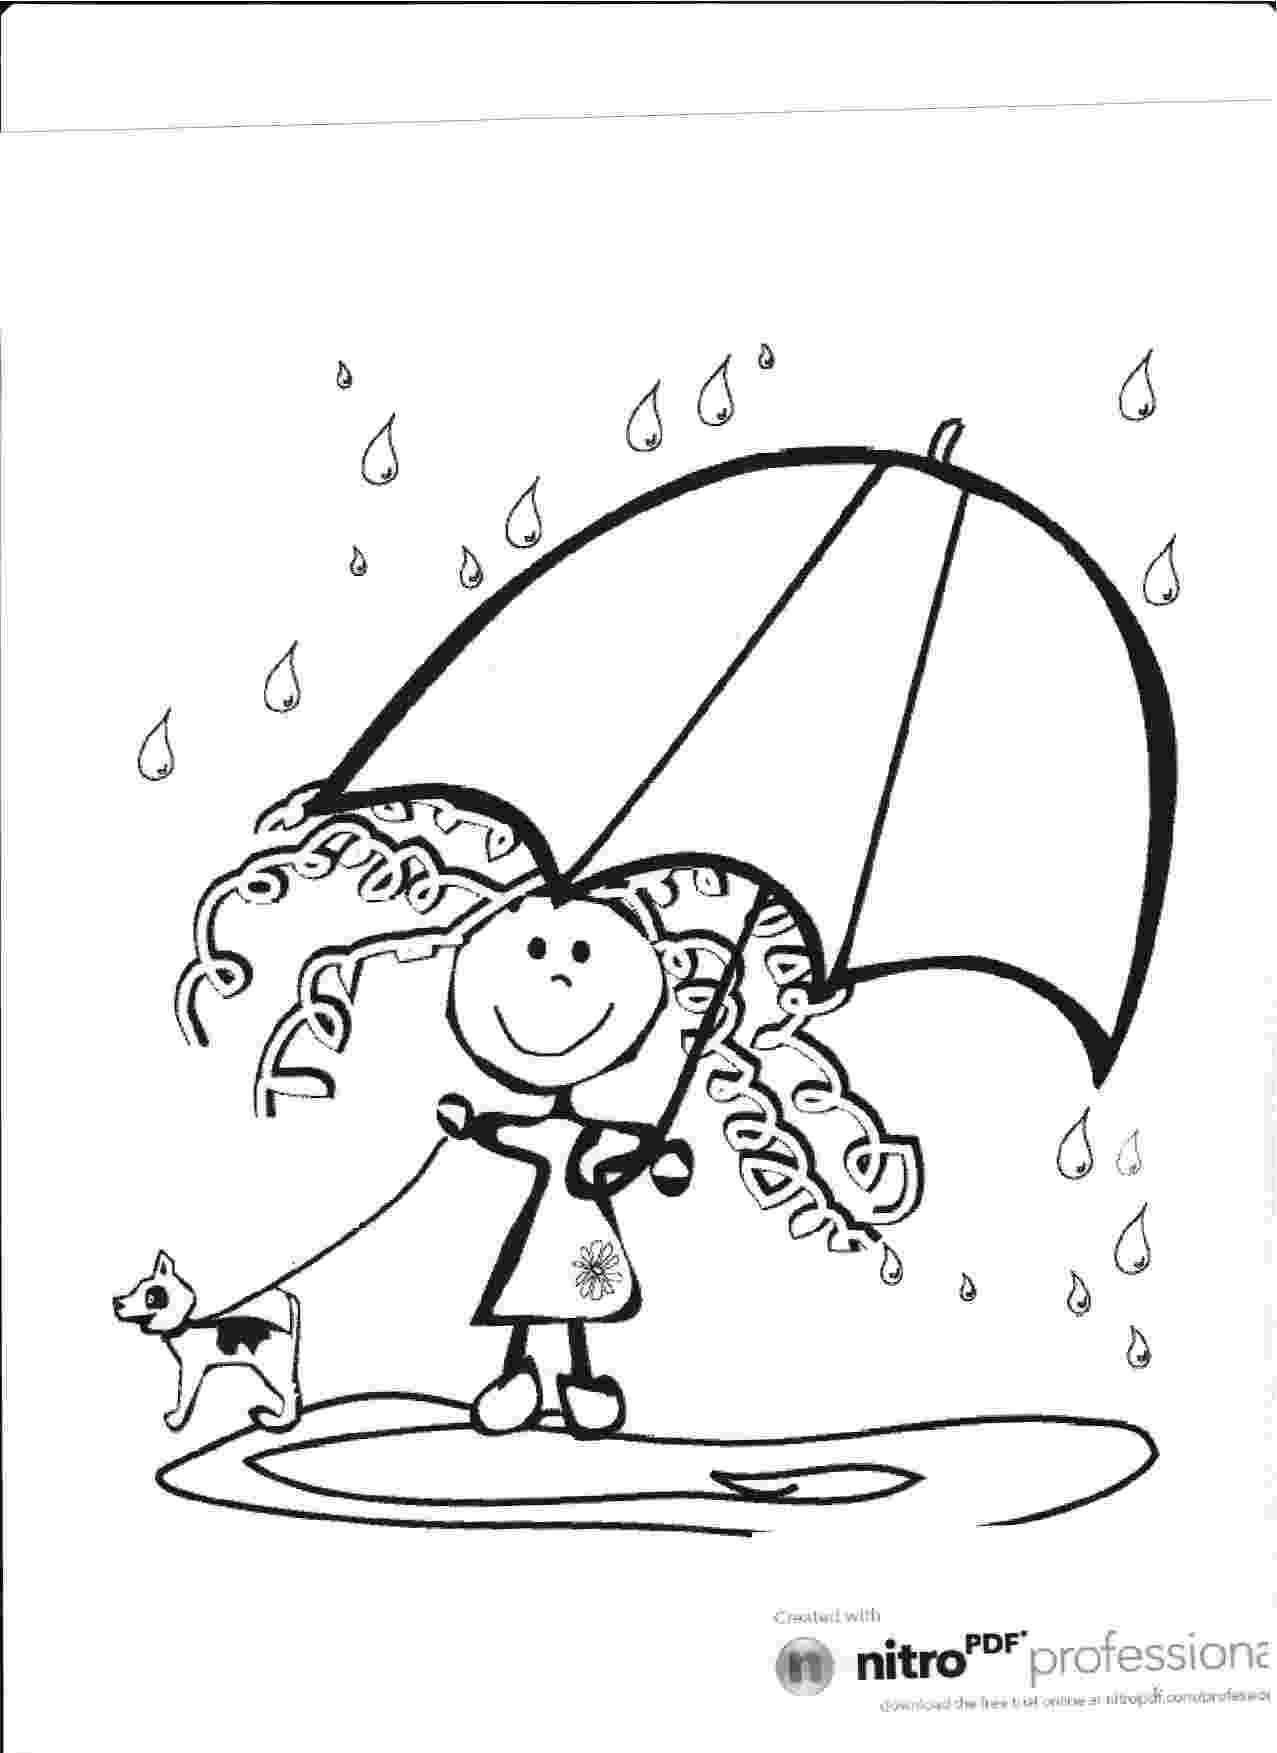 rainy day coloring pages for preschoolers autumn coloring pages fall topcoloringpagesnet for preschoolers day pages coloring rainy